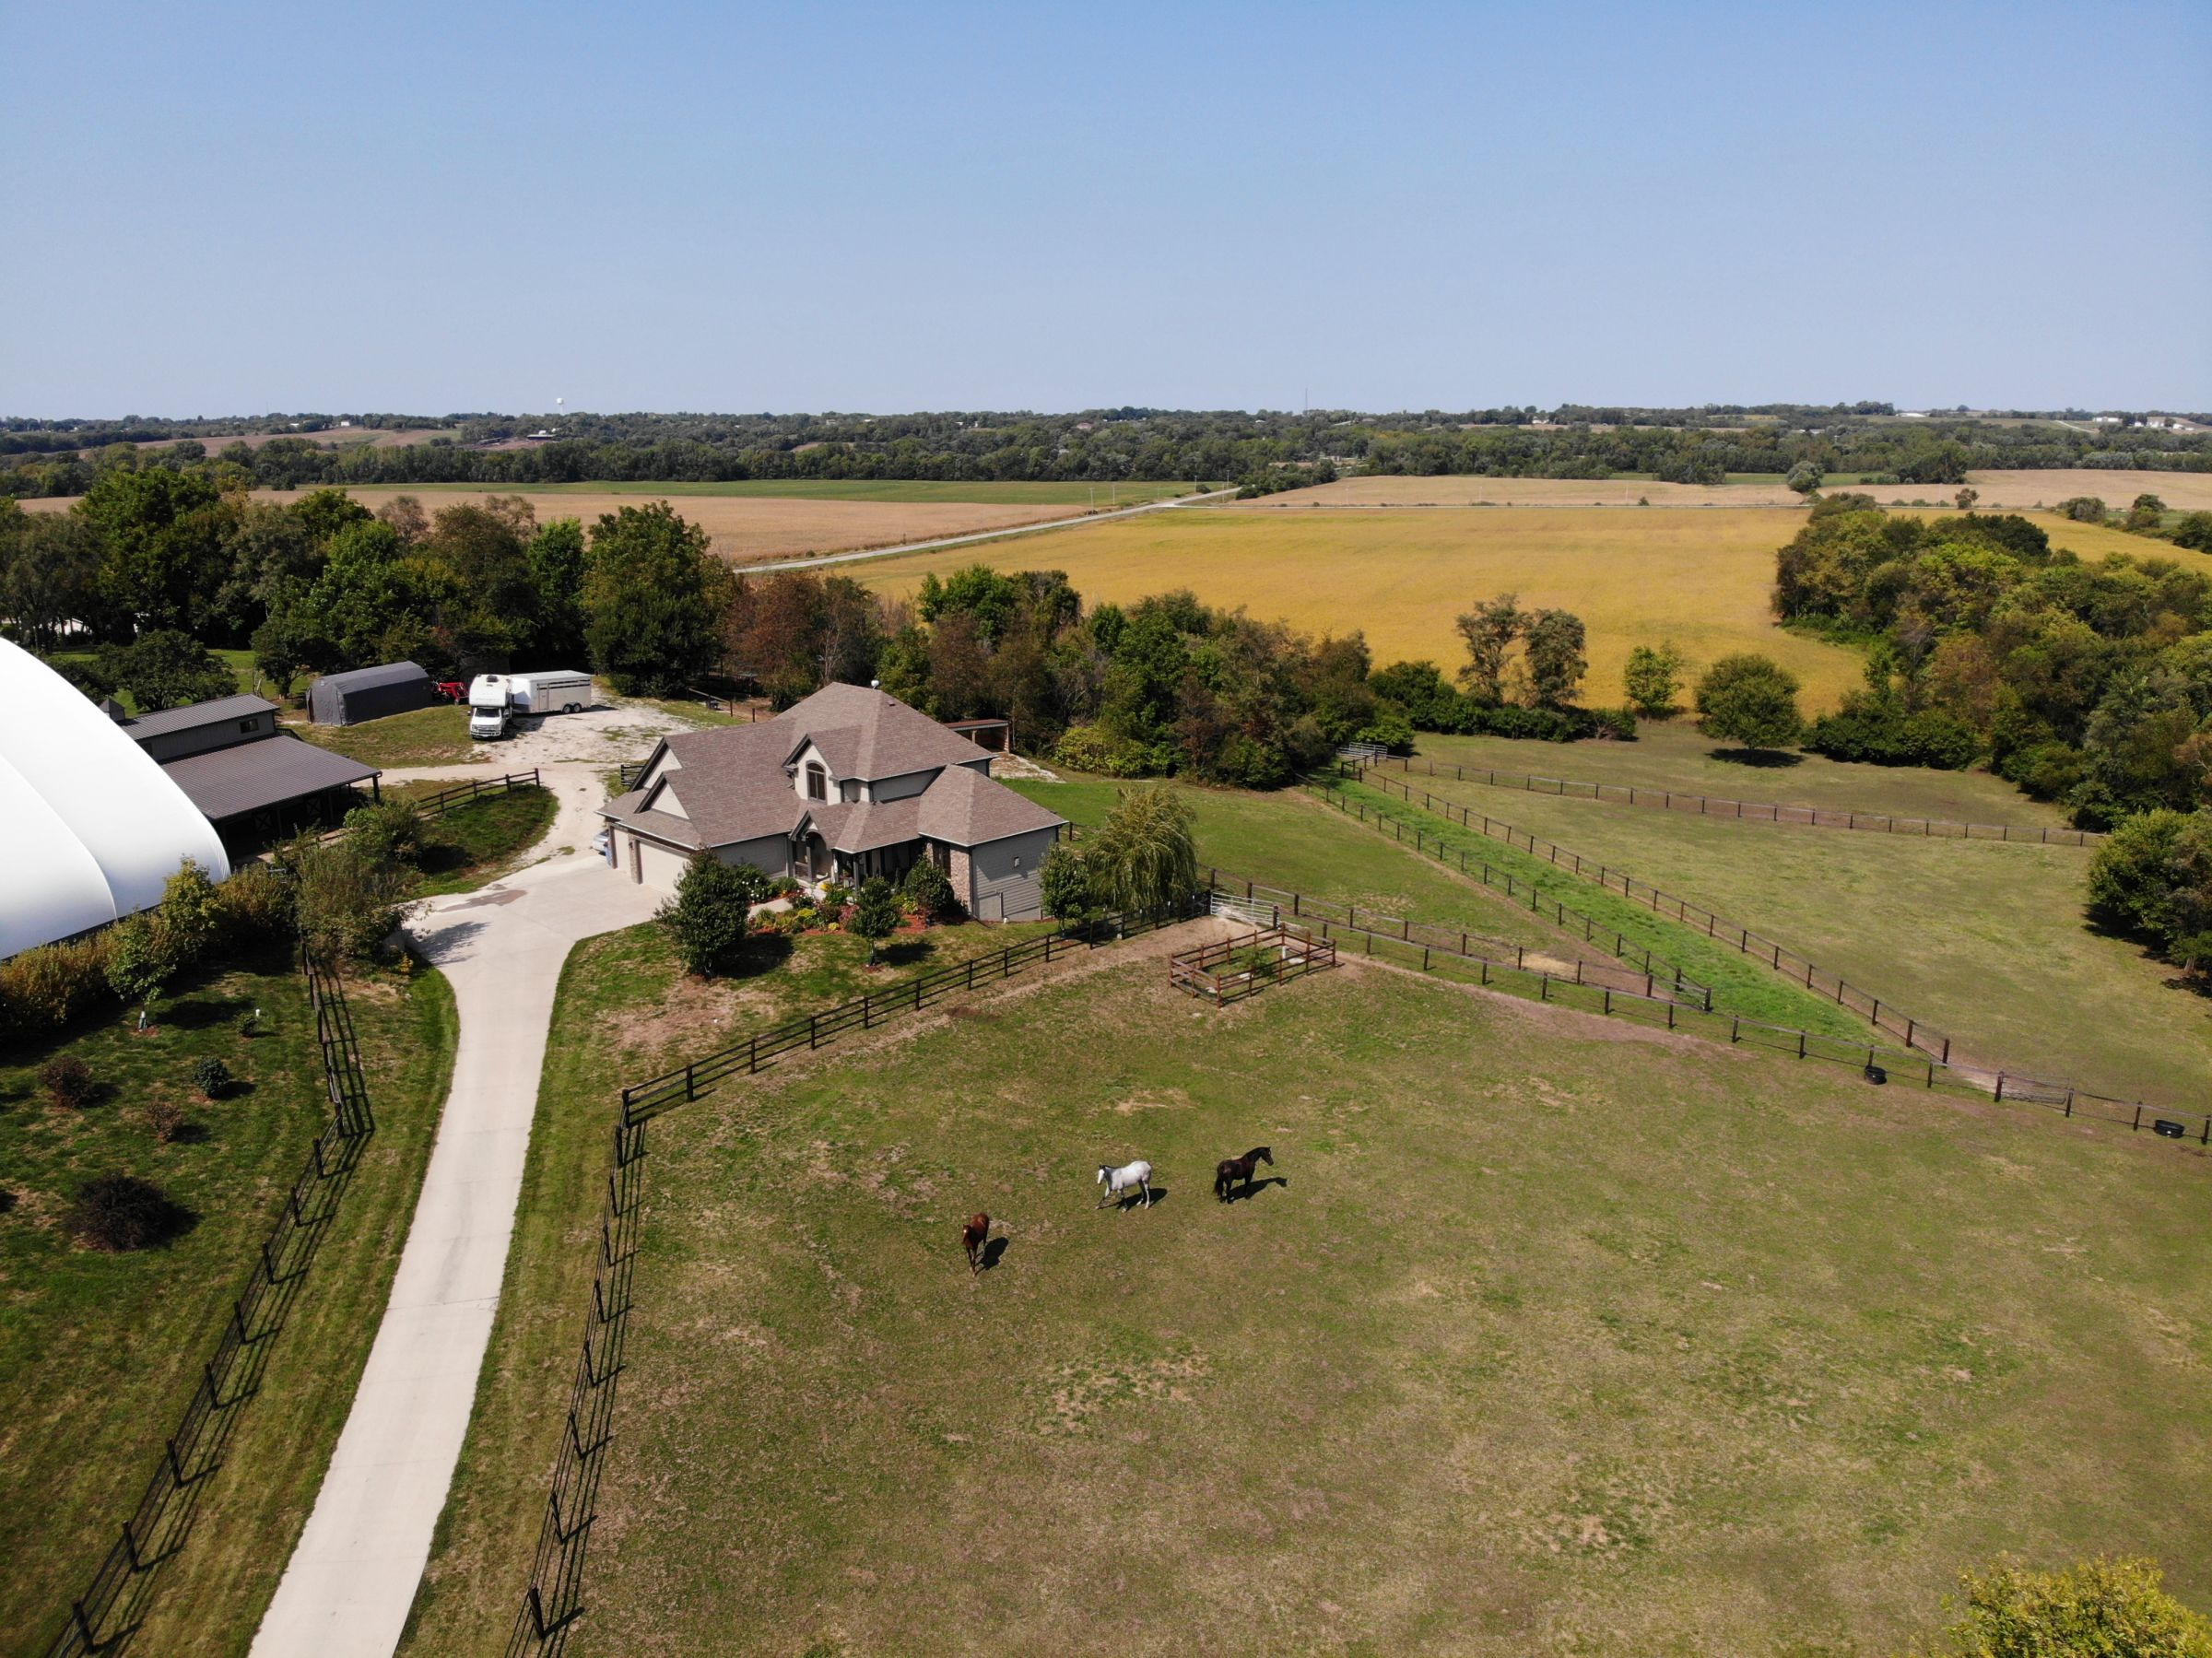 residential-warren-county-iowa-8-acres-listing-number-15130-0-2020-09-16-204225.JPG